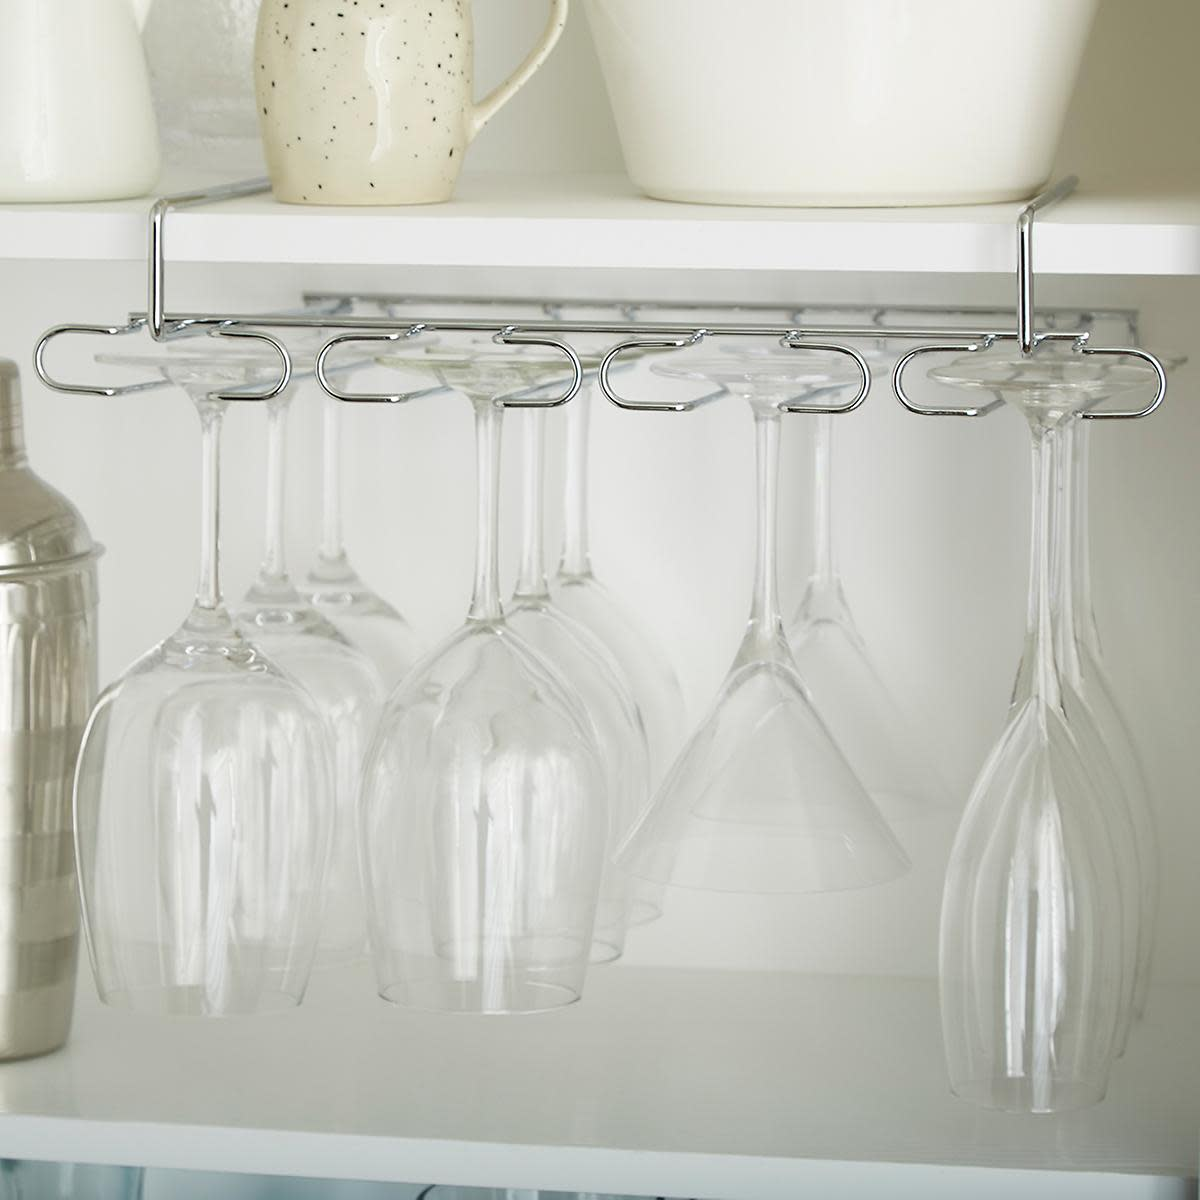 The under-shelf the wine stemware holds slips to hang stemware safely out of the way.